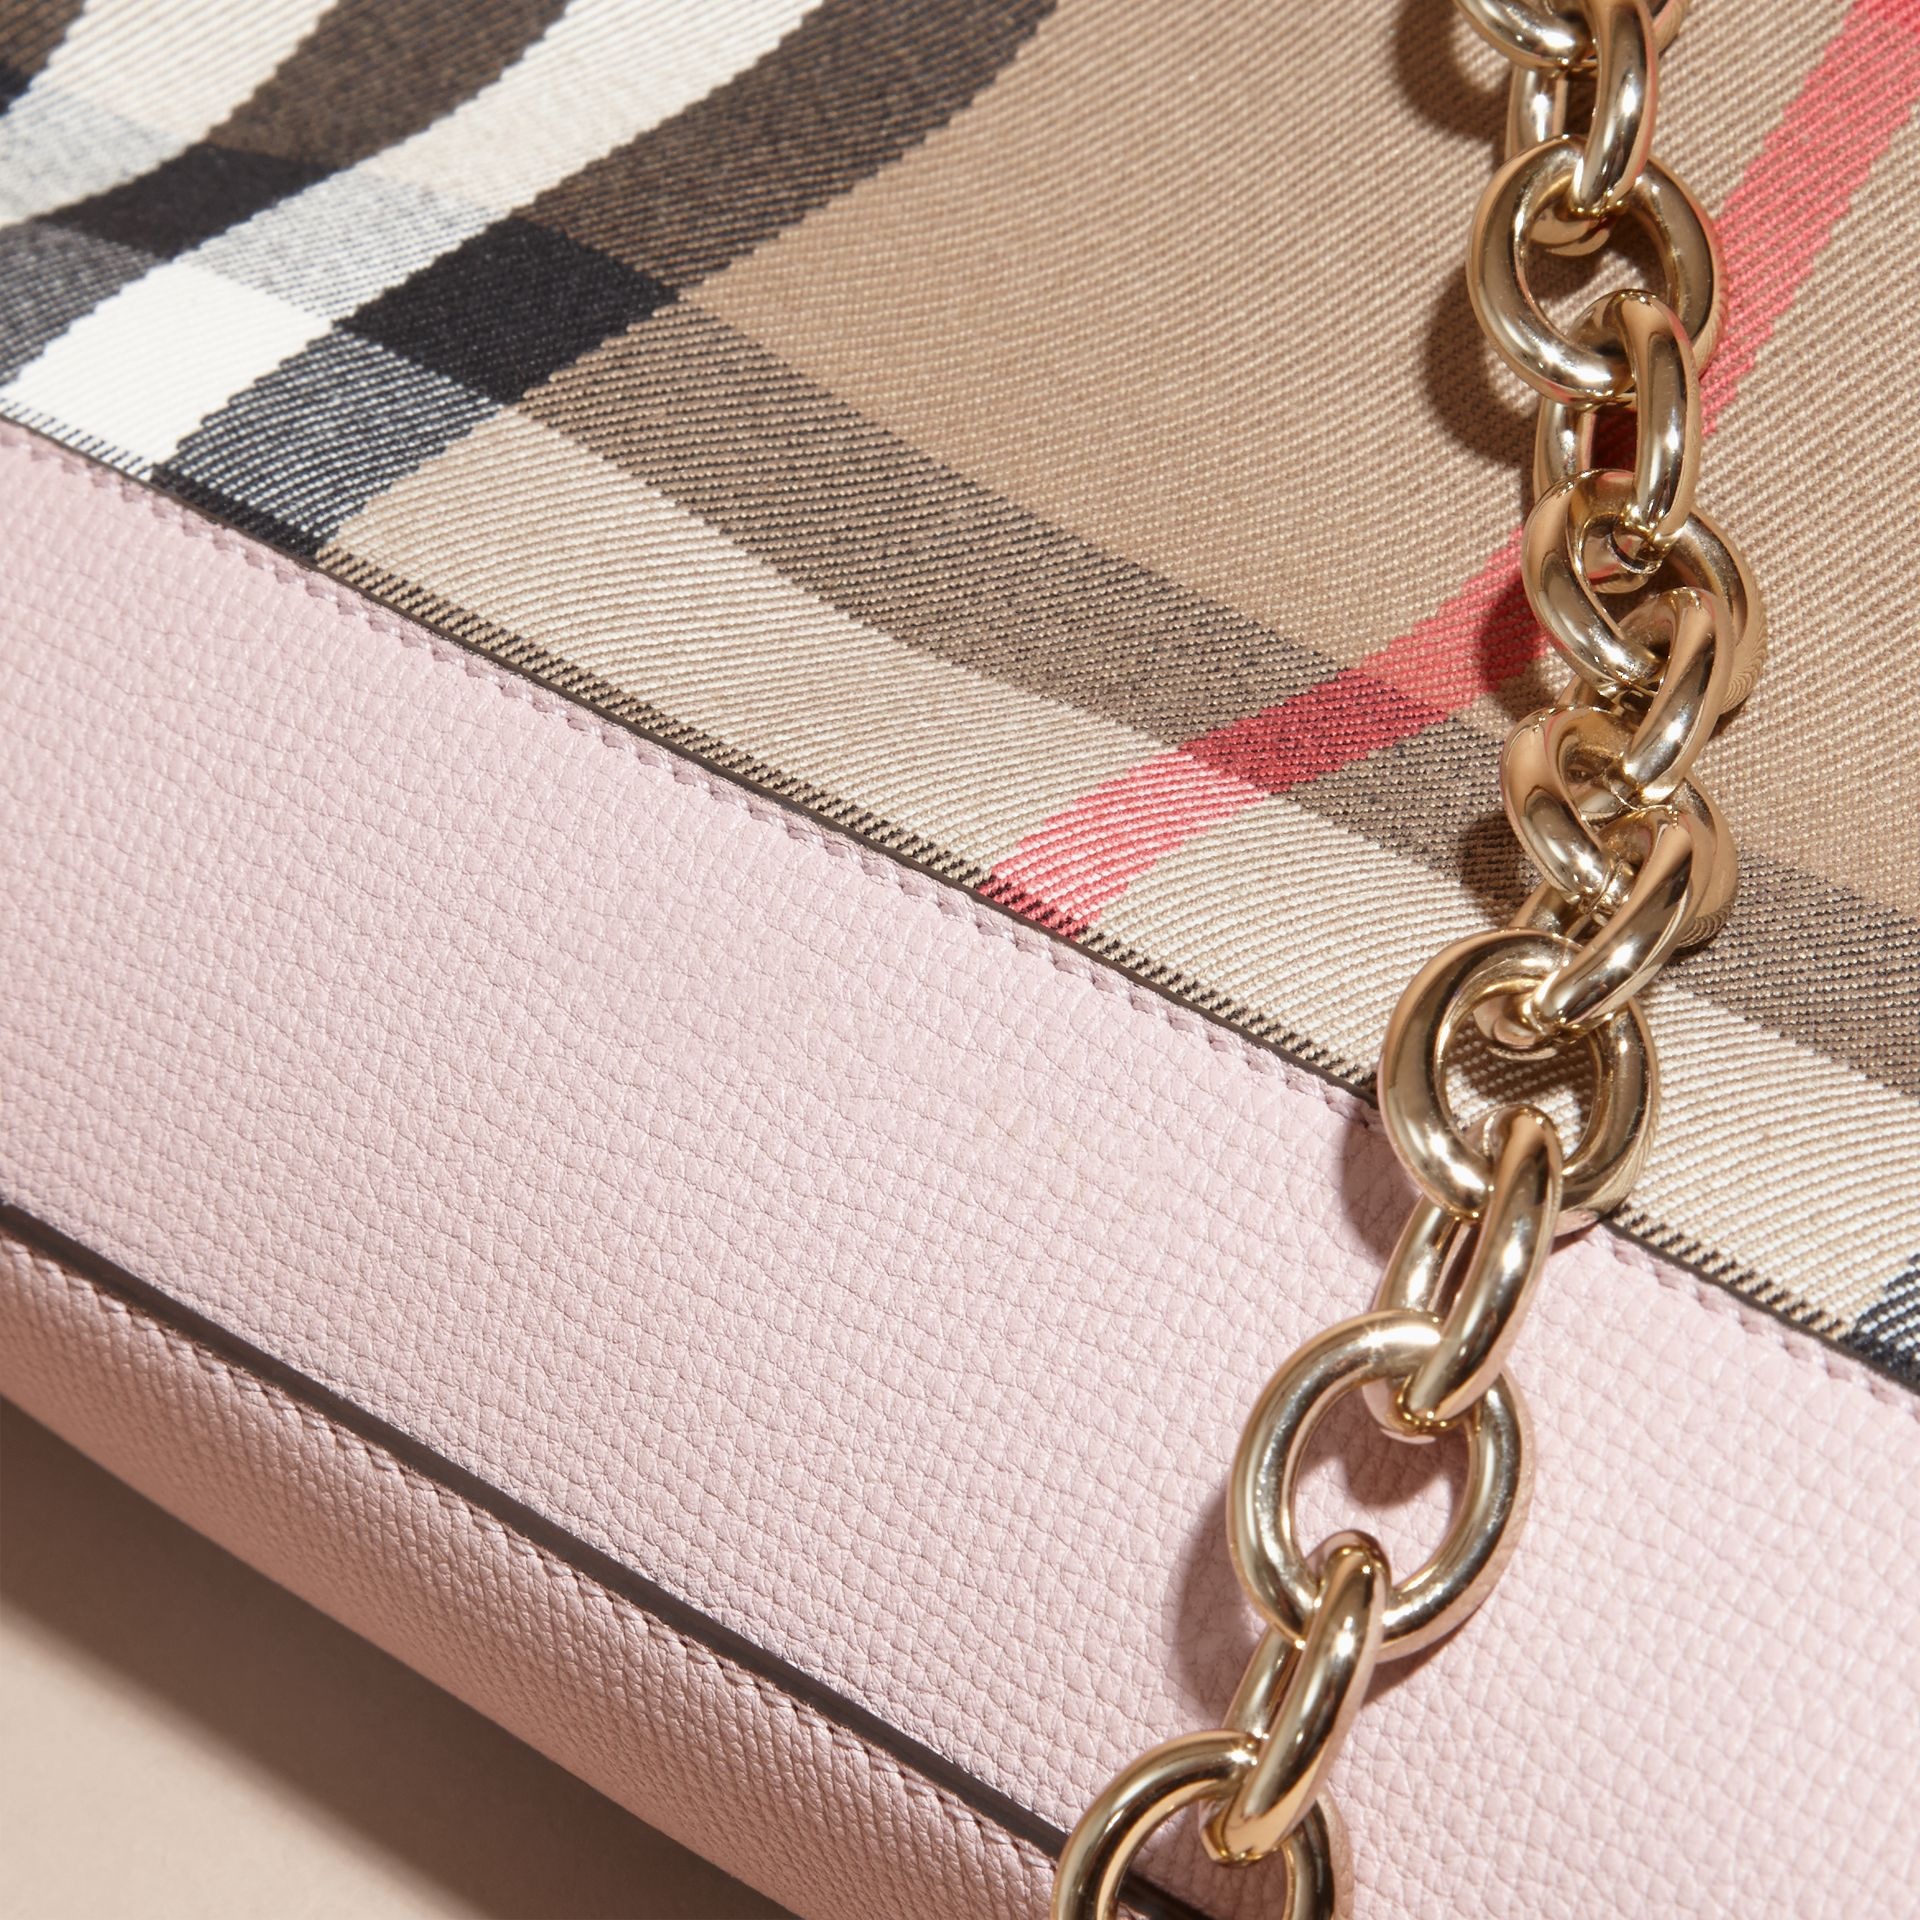 House Check and Leather Clutch Bag in Pale Orchid - Women | Burberry - gallery image 7